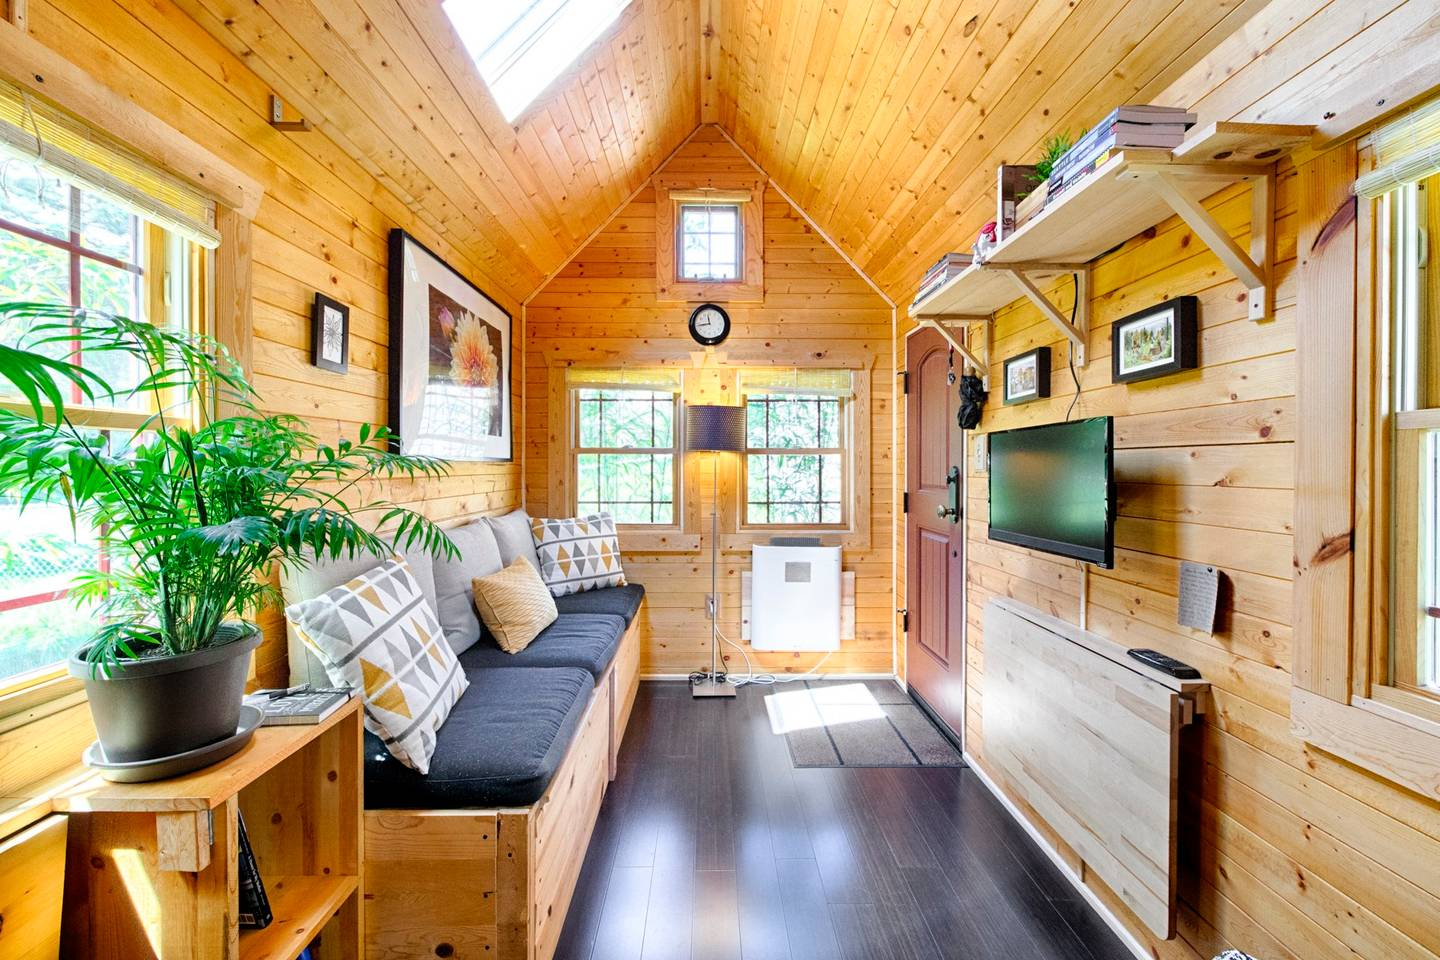 Photos Tiny House Seattle Wa: The Self-Built Tiny Tack House In Seattle